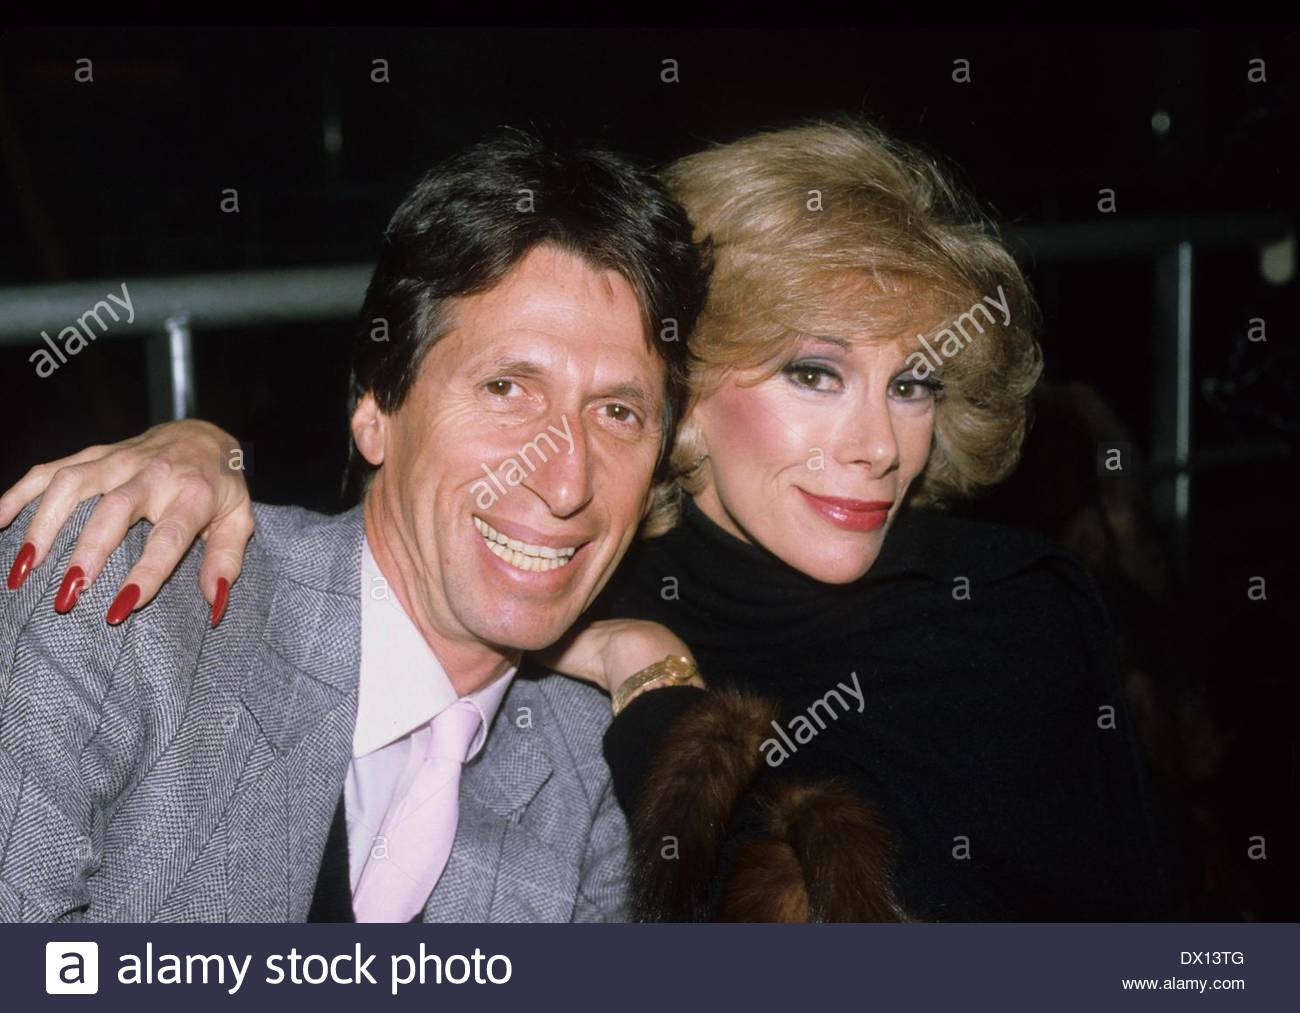 DAVID BRENNER (February 4, 1936 - March 15, 2014) was an American stand-up comedian, actor and author. The most frequent guest on The Tonight Show Starring Johnny Carson in the 1970s and 1980s, Brenner was a pioneer in the genre of observational comedy. PICTURED: Jun 1, 1982 - Comedians DAVID BRENNER and JOAN RIVERS in 1982. (exact date and place unknown) (Credit Image: © Adam Scull/Globe Photos/ZUMAPRESS.com) (Credit Image: © Adam Scull/Globe Photos/ZUMAPRESS.com) - Stock Image